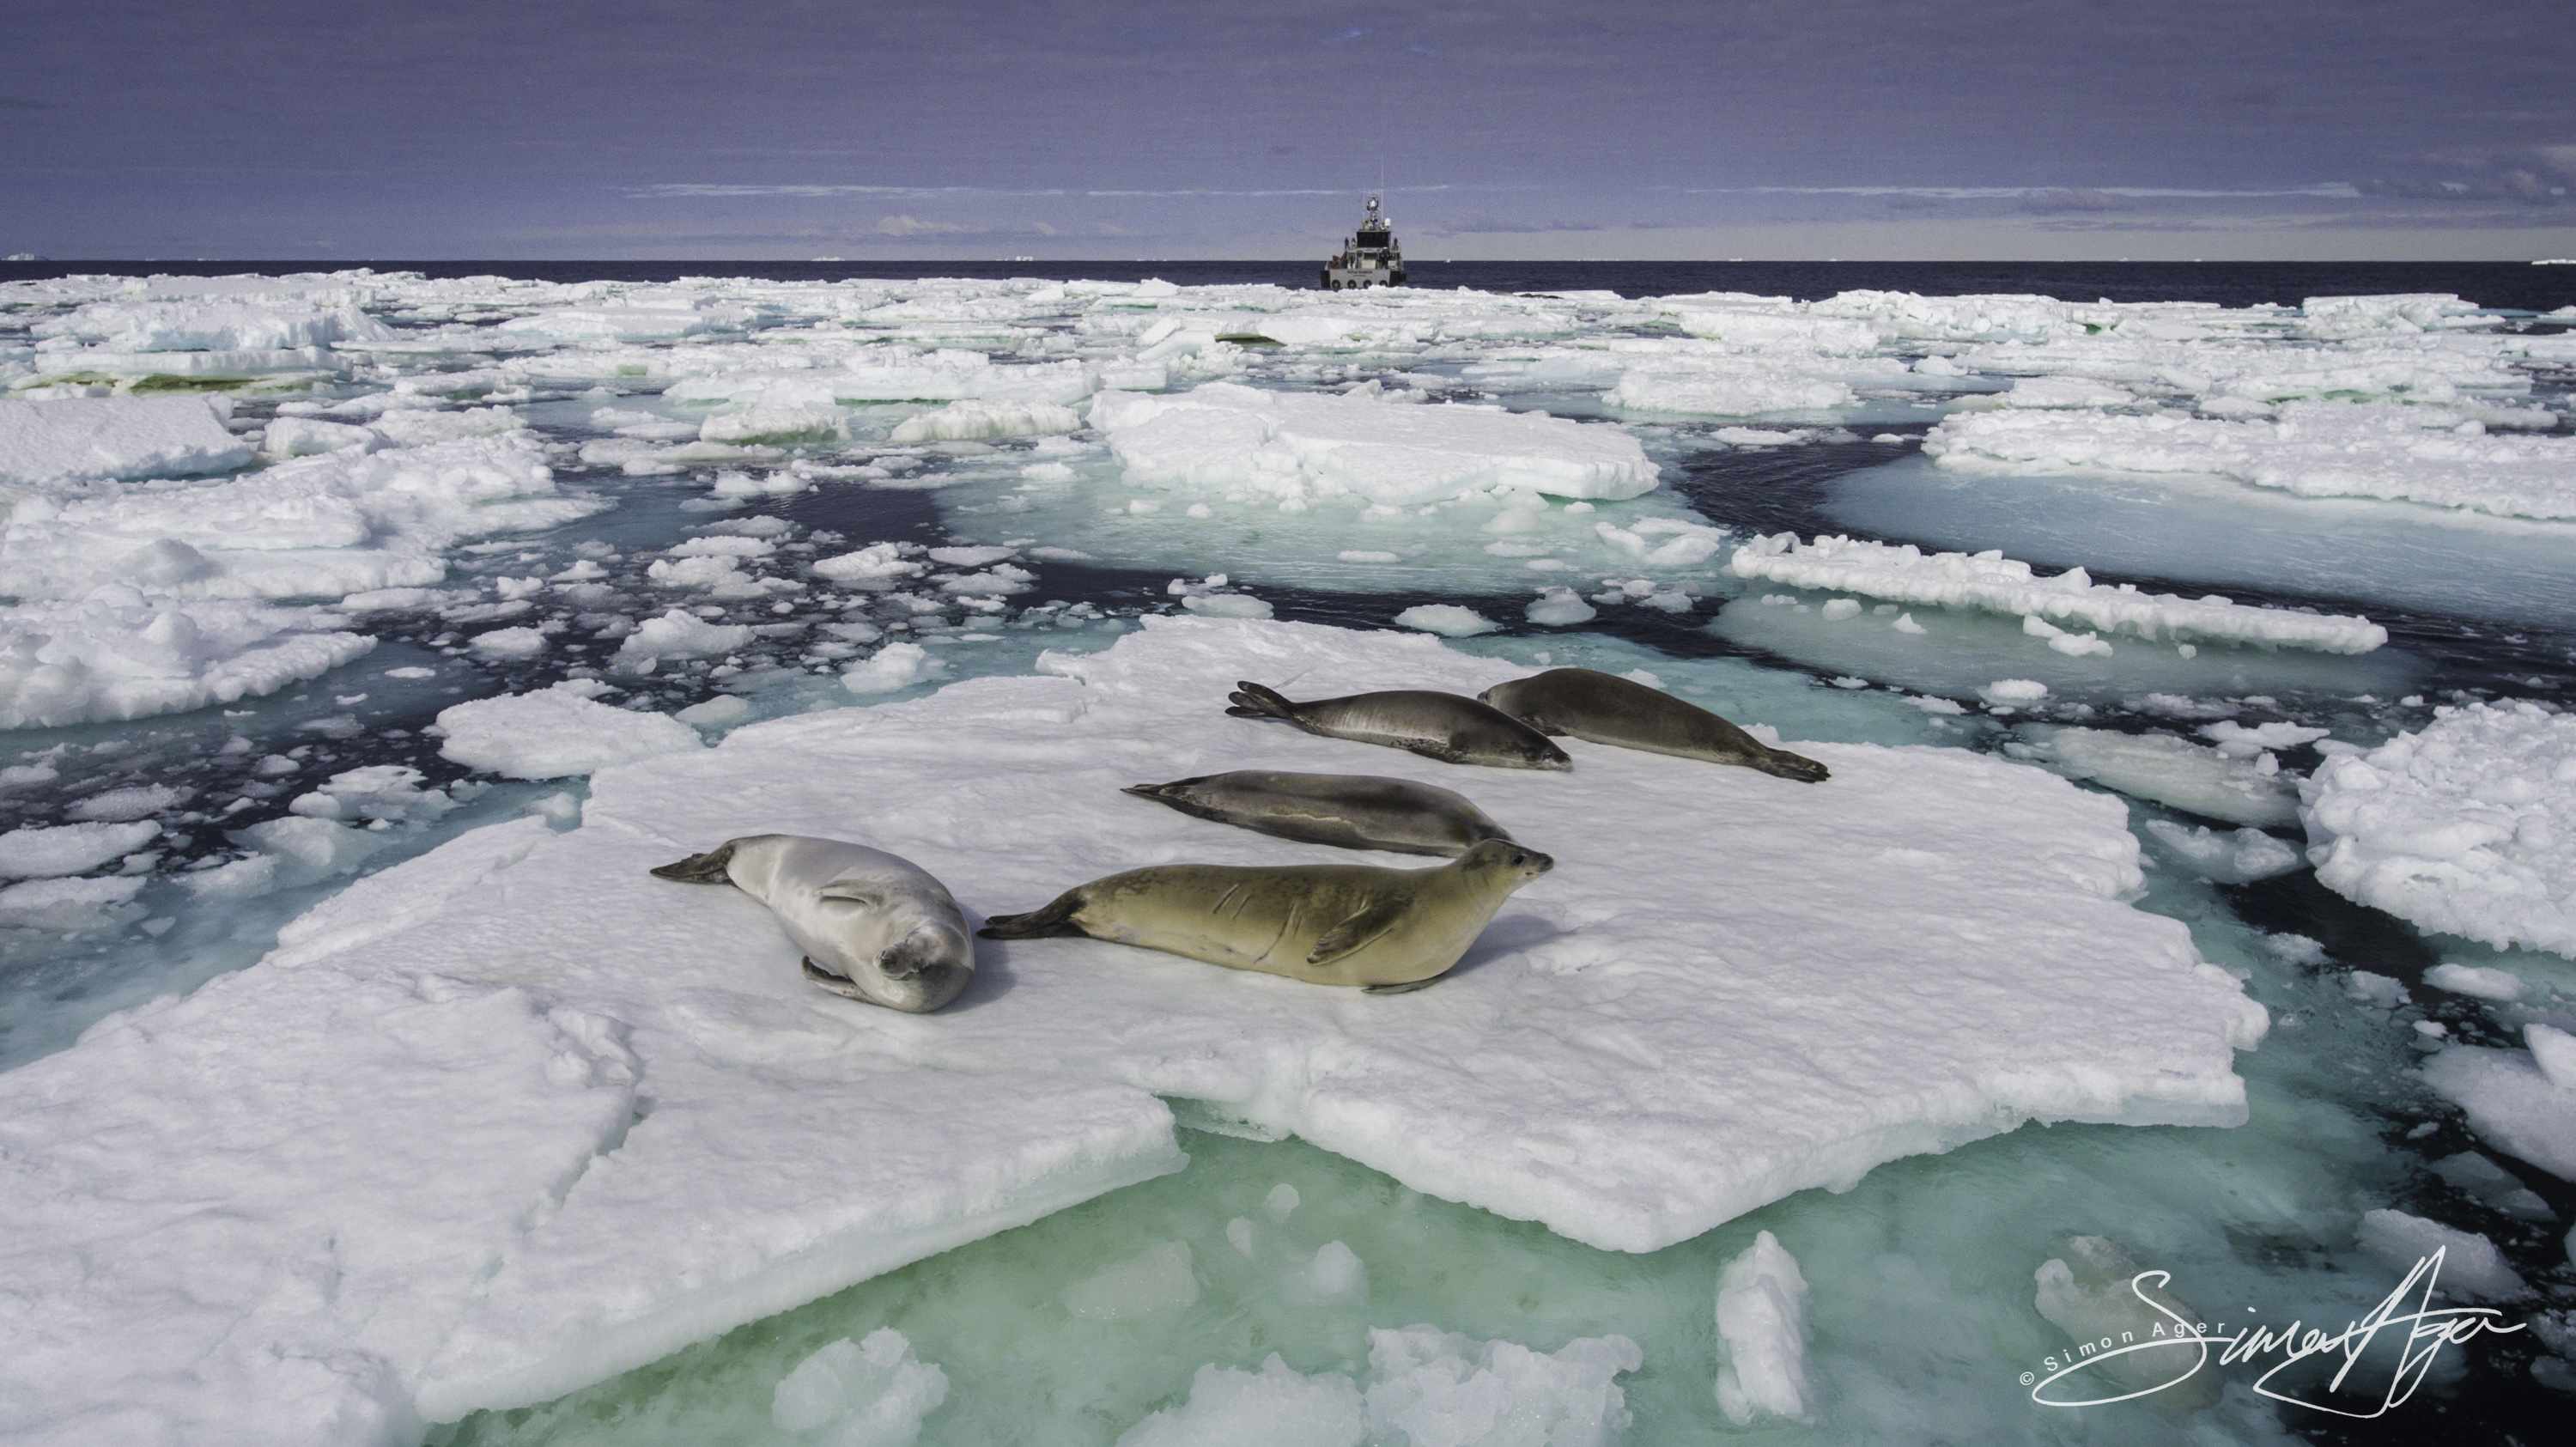 170205-SA-Fur-seals-laze-around-on-ice-pans-007-0329